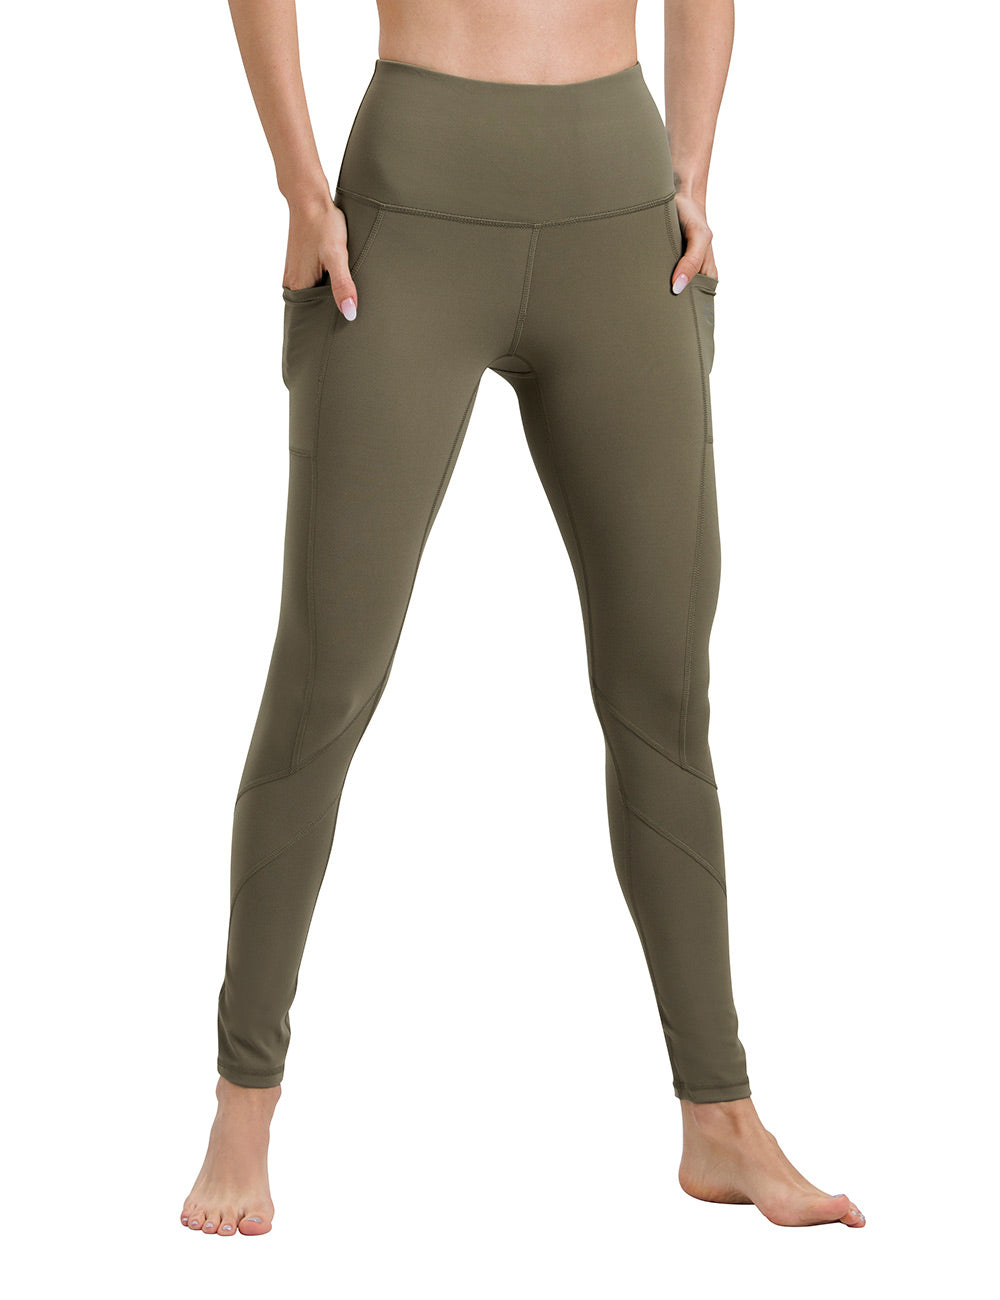 Olive Green Yoga Pants - ALONGFIT